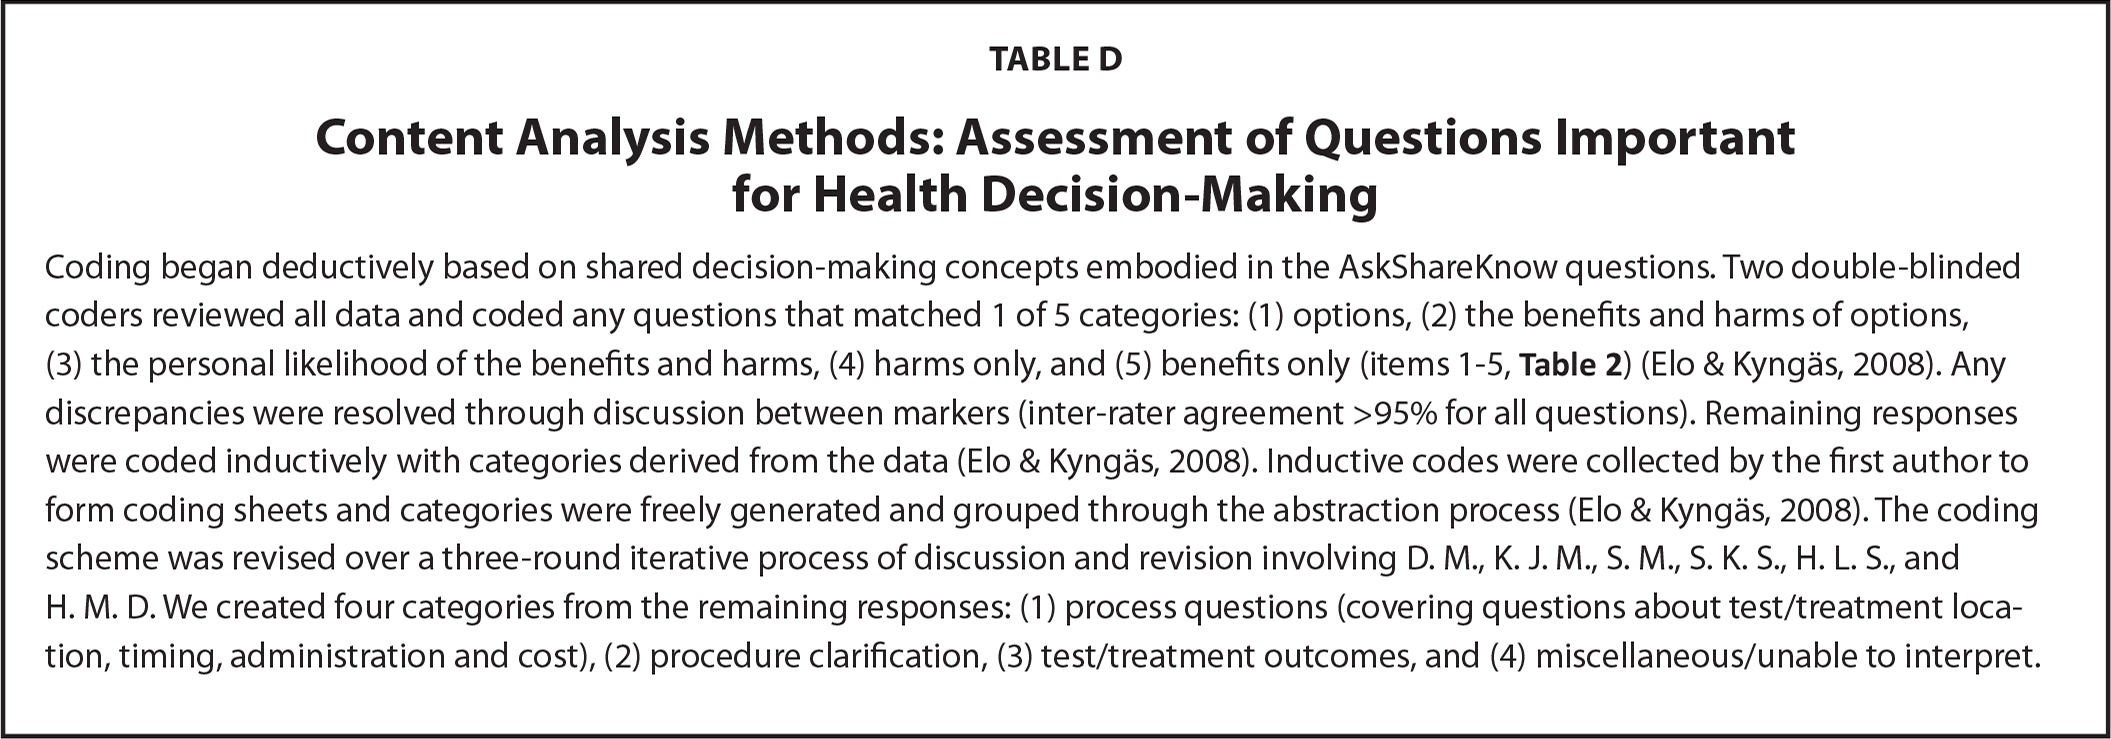 Content Analysis Methods: Assessment of Questions Important for Health Decision-Making